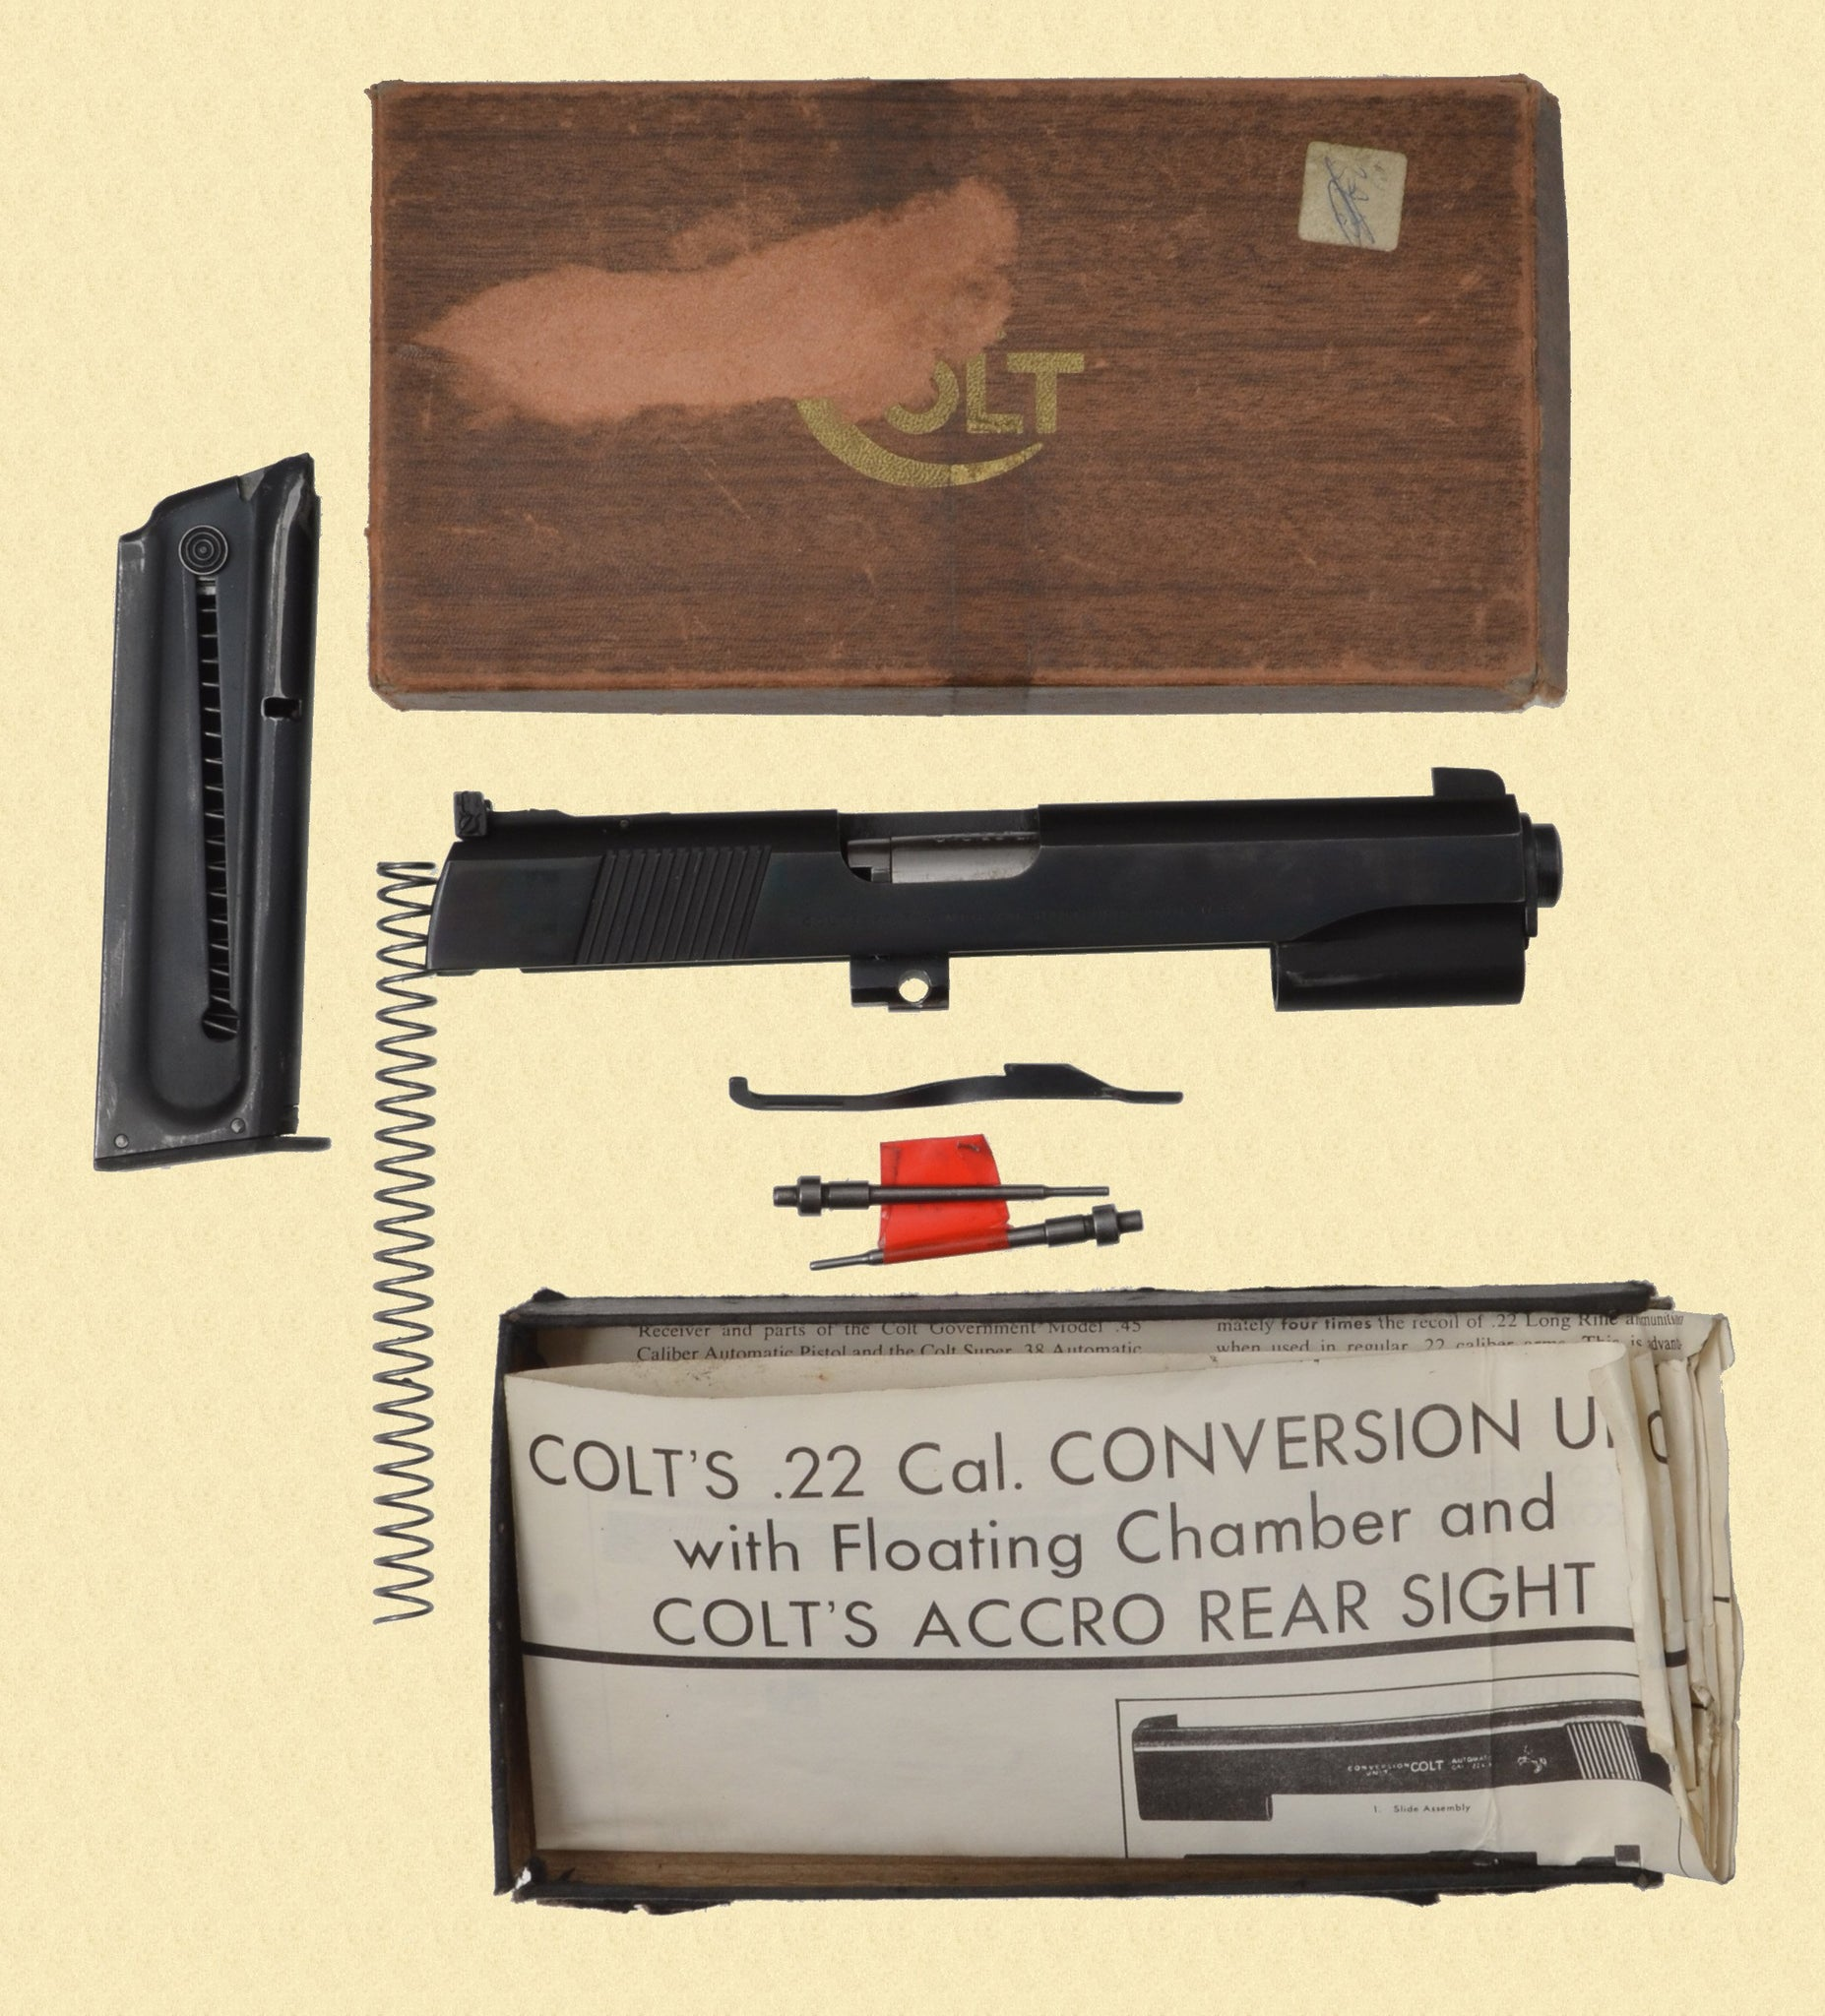 COLT 22 CONVERSION UNIT